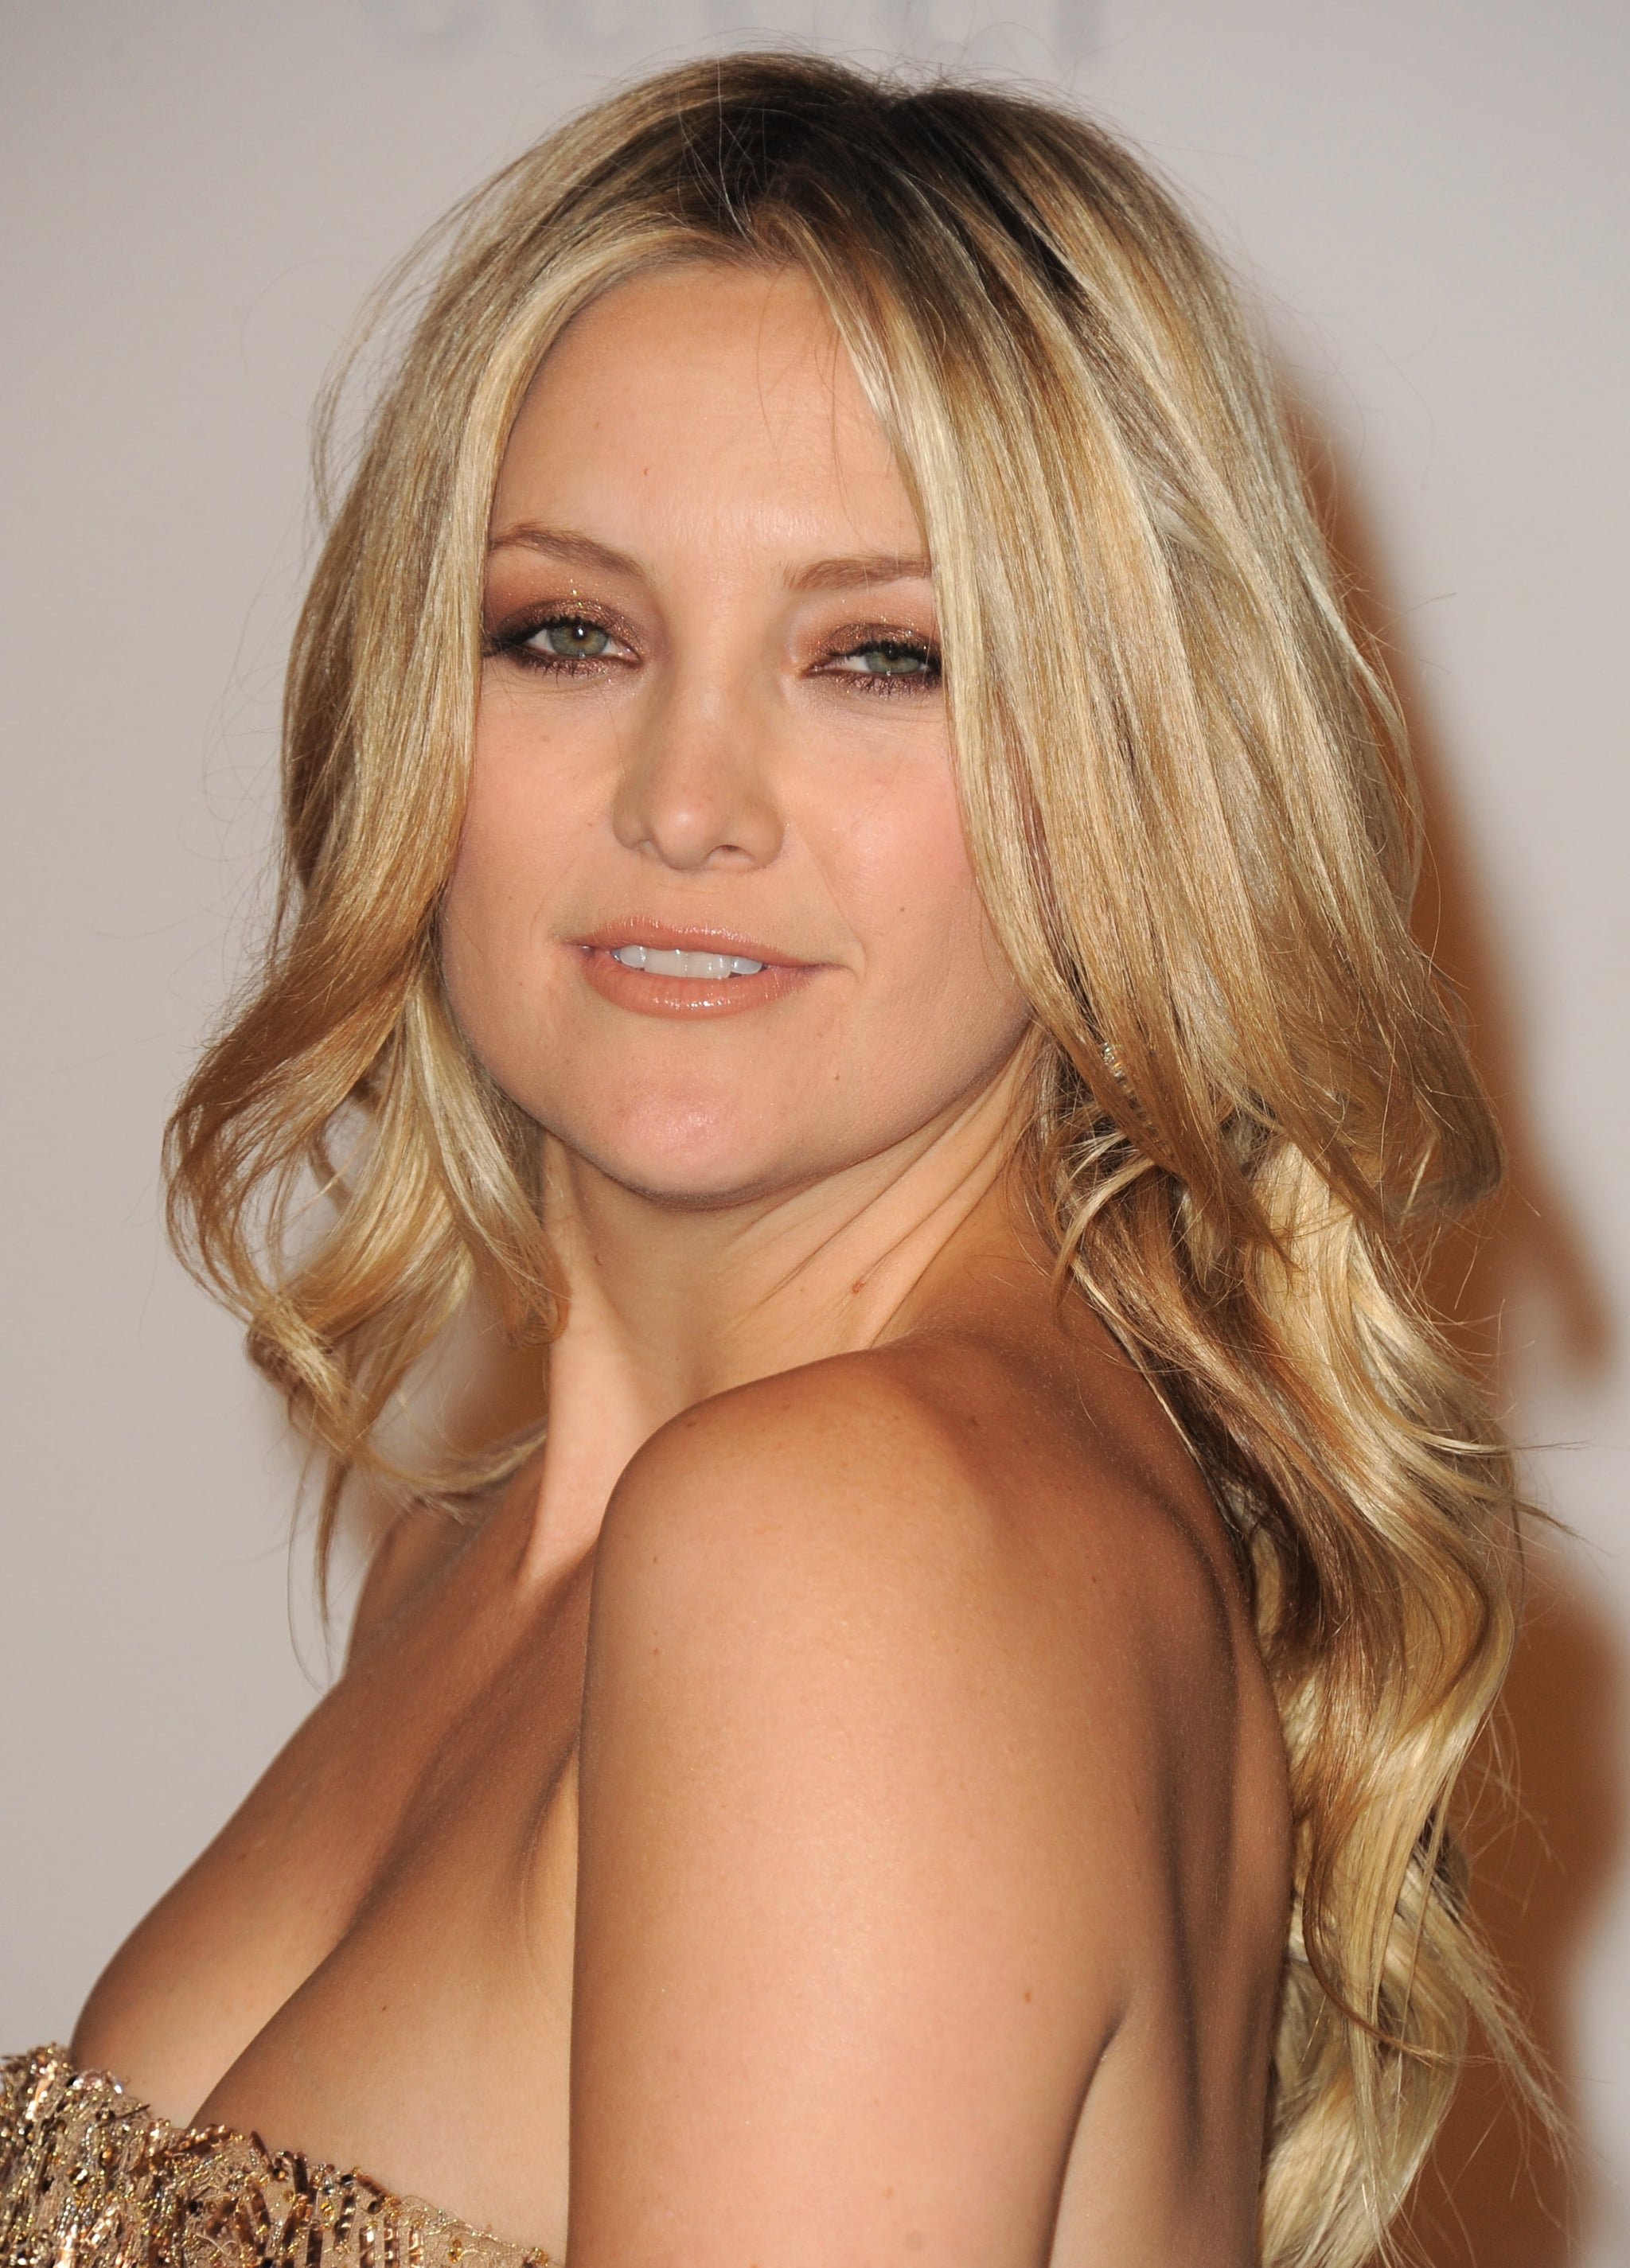 Kate Hudson in a strapless gold dress.